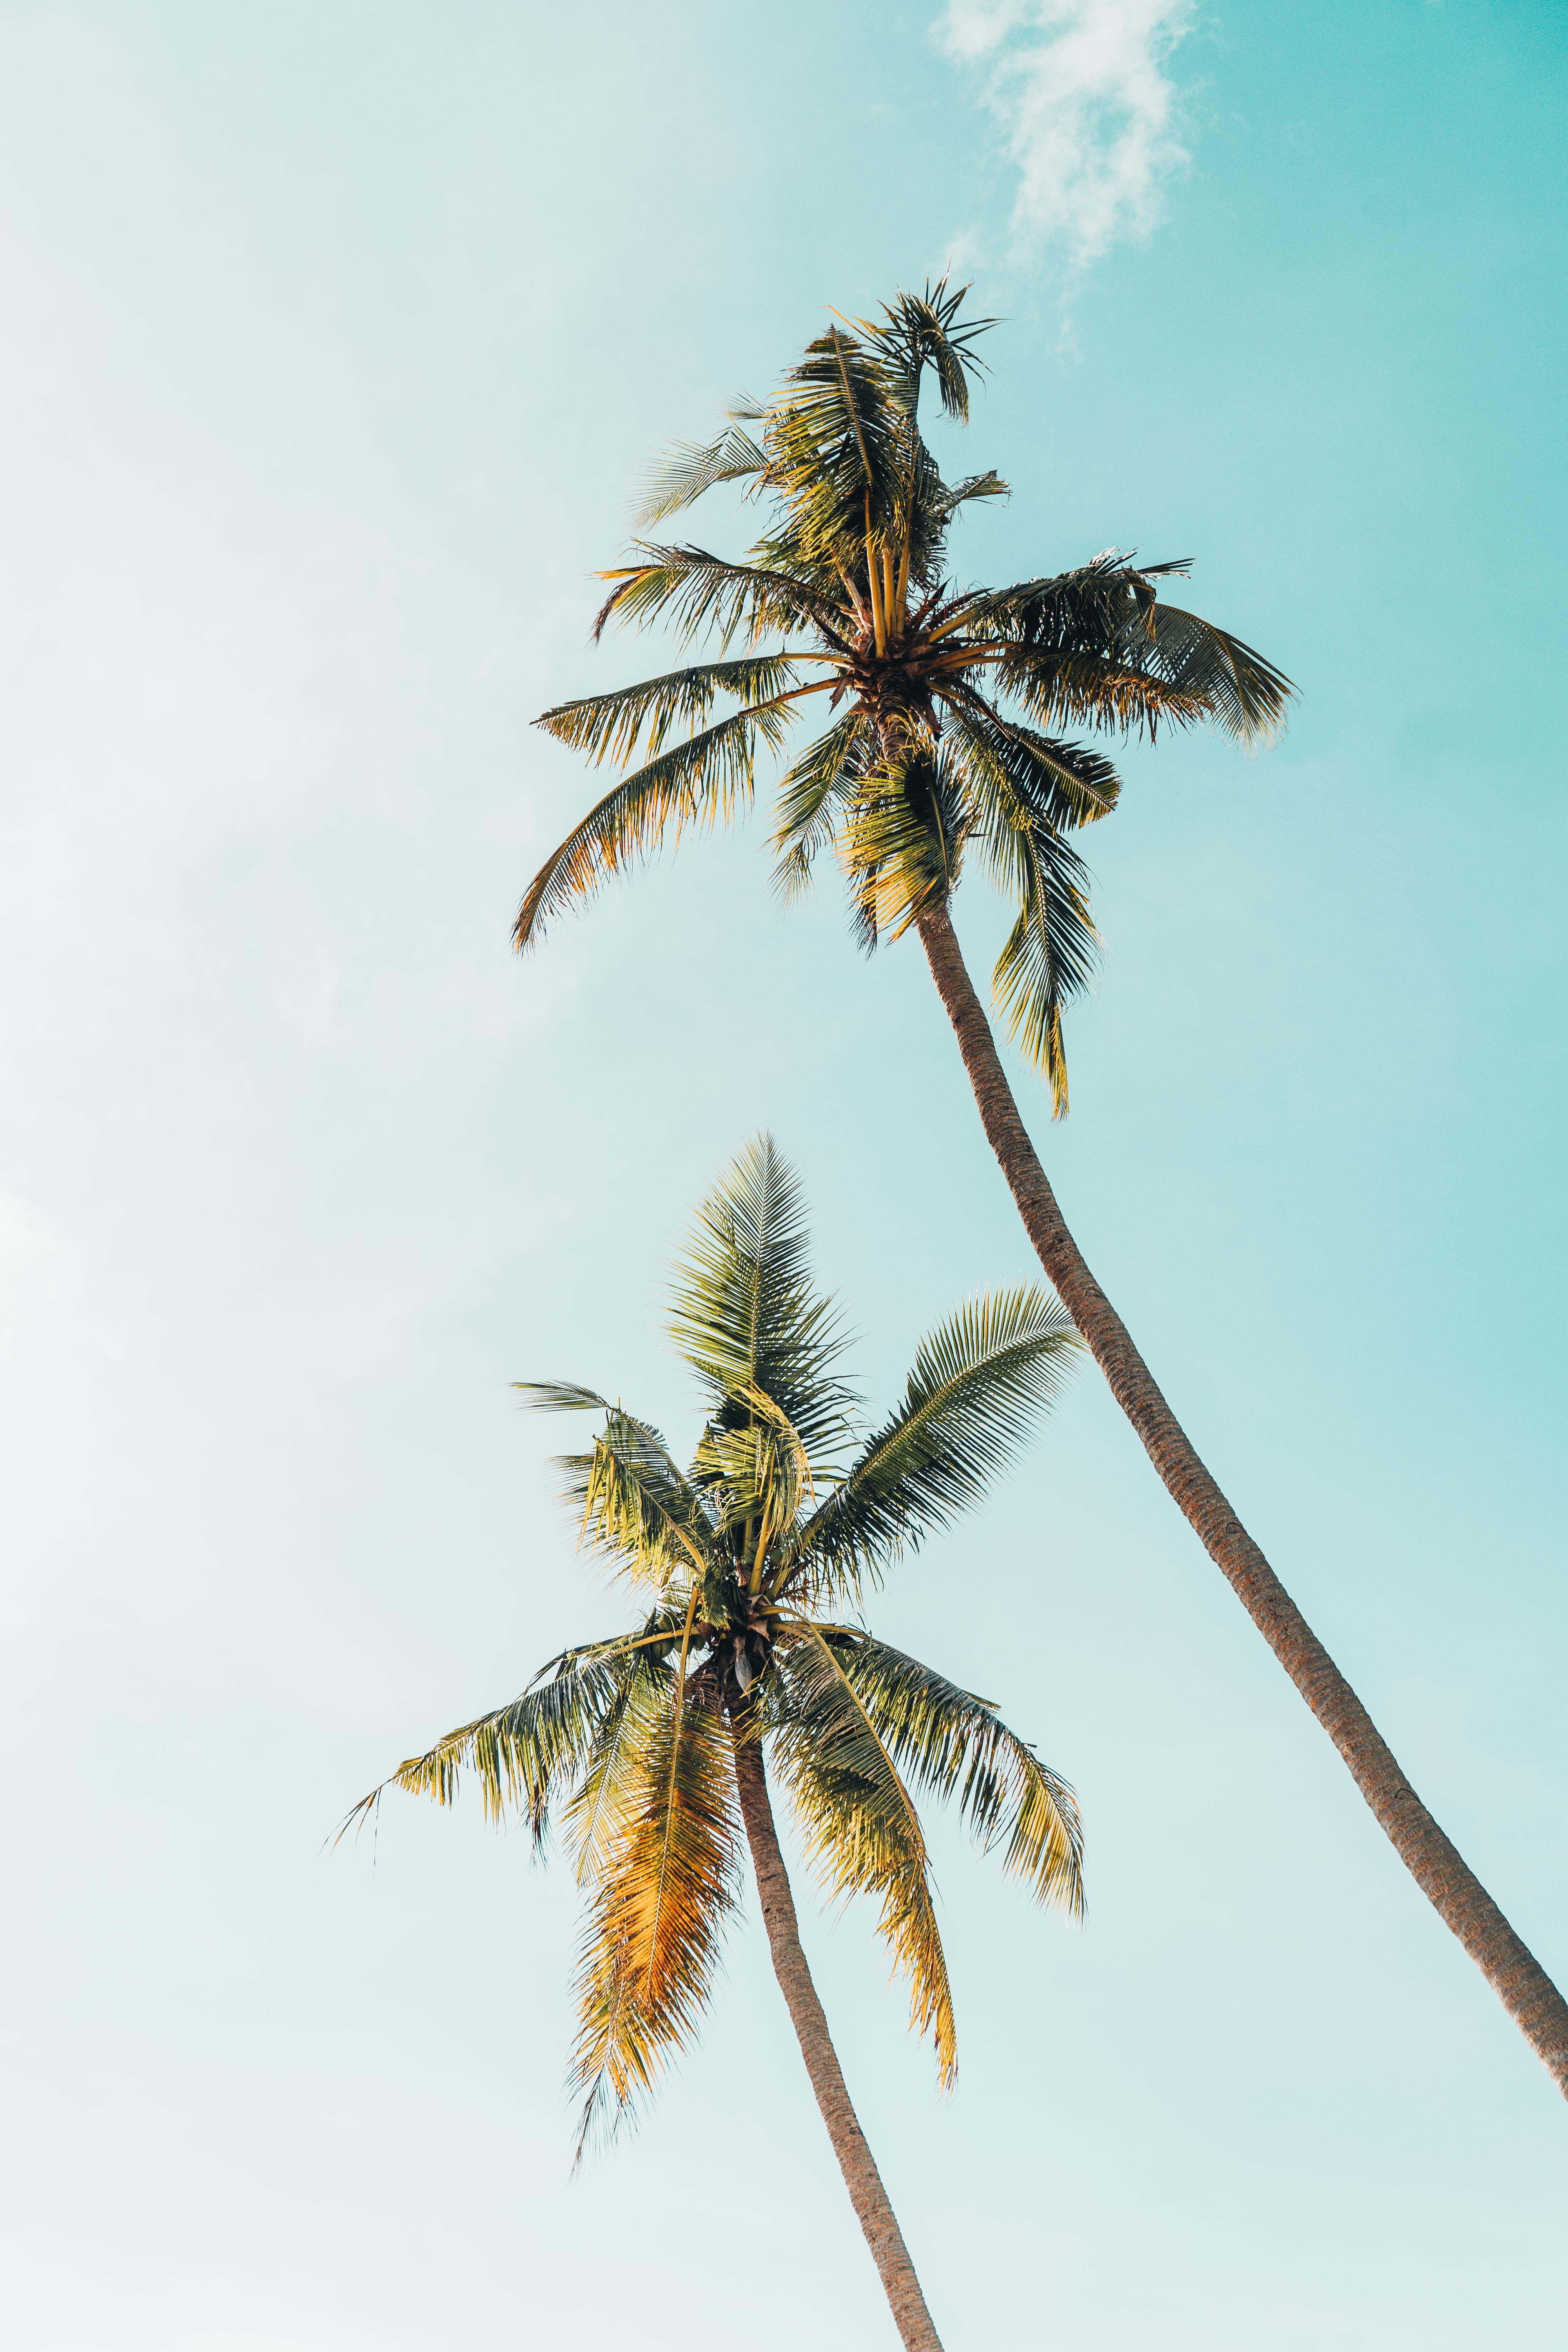 worm's-eye view photography of two coconut trees